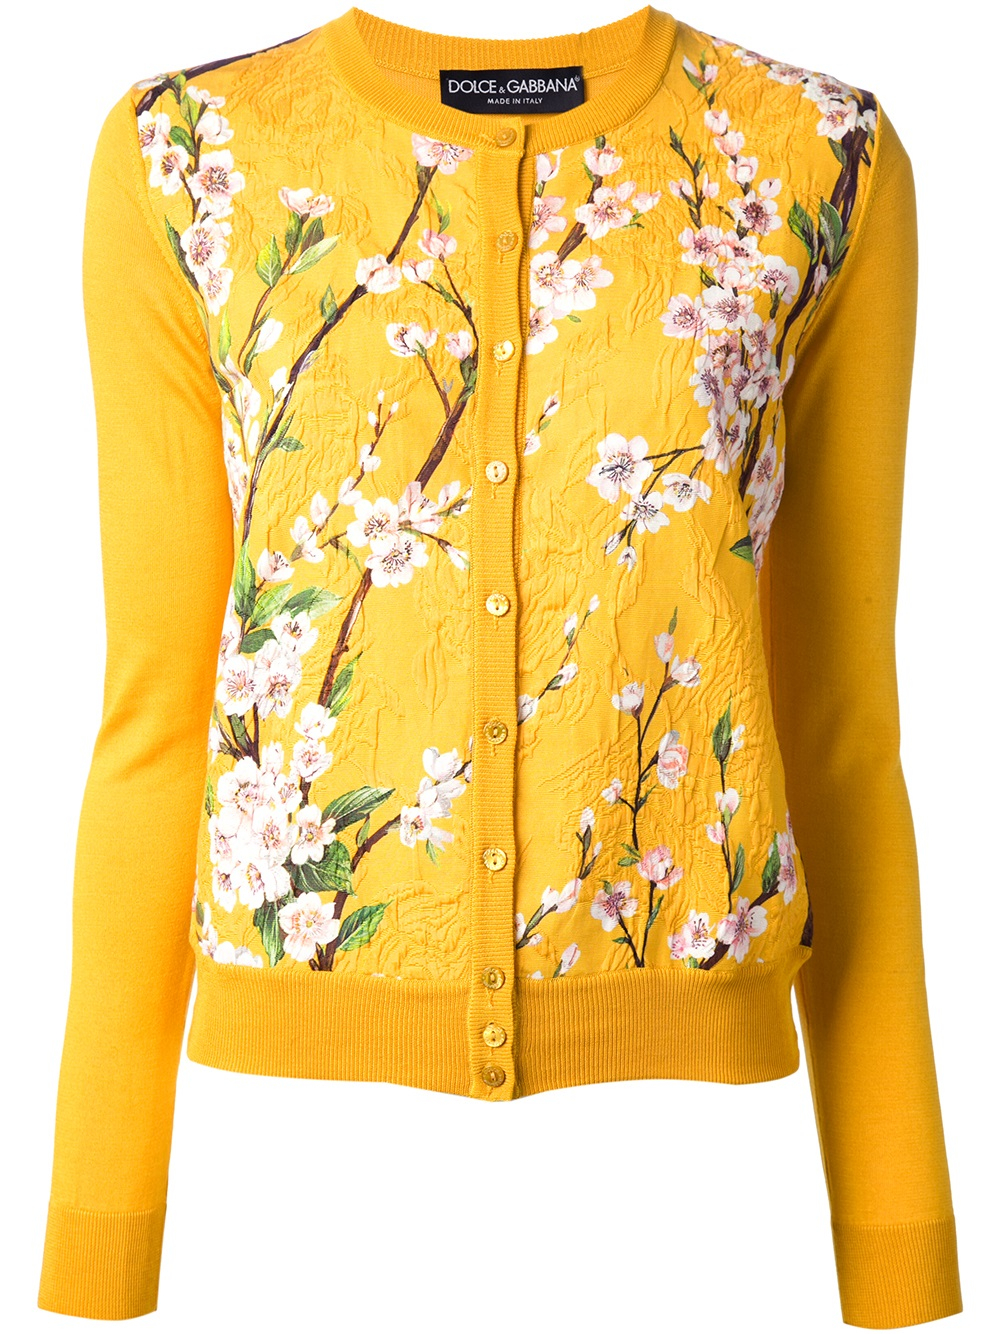 Dolce & gabbana Floral Print Cardigan in Yellow | Lyst